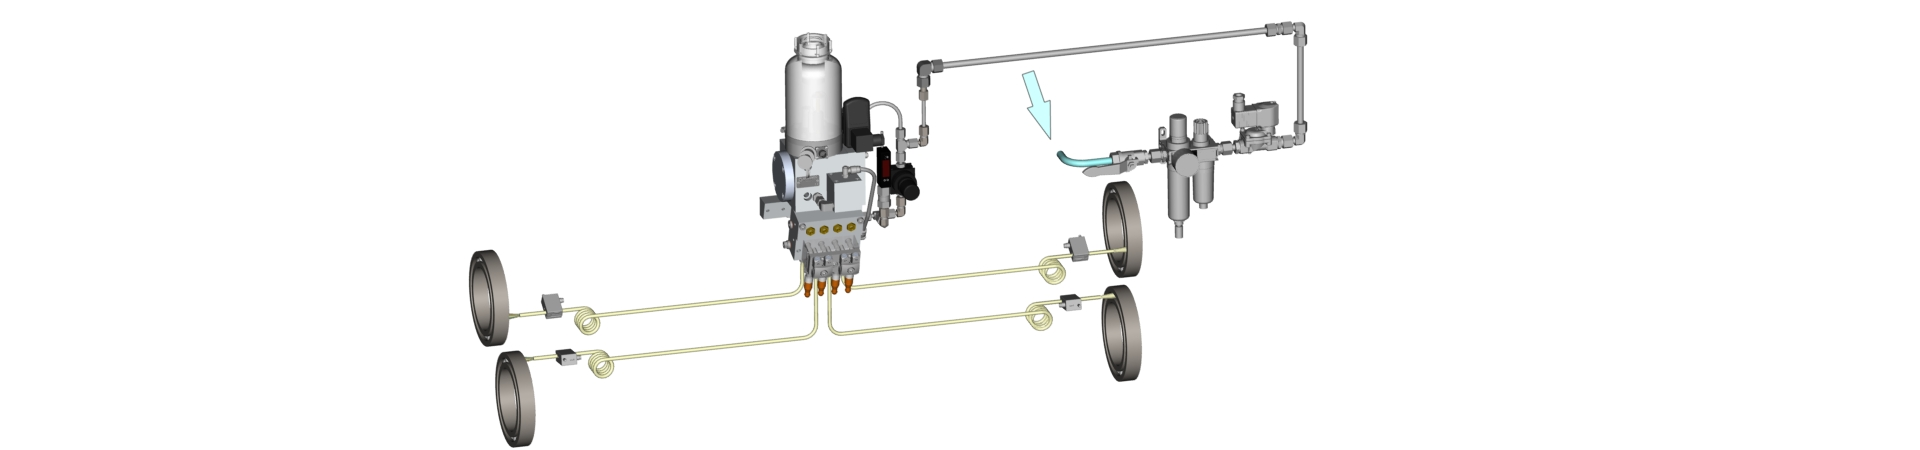 Oil-Air Lubrication System - Woerner